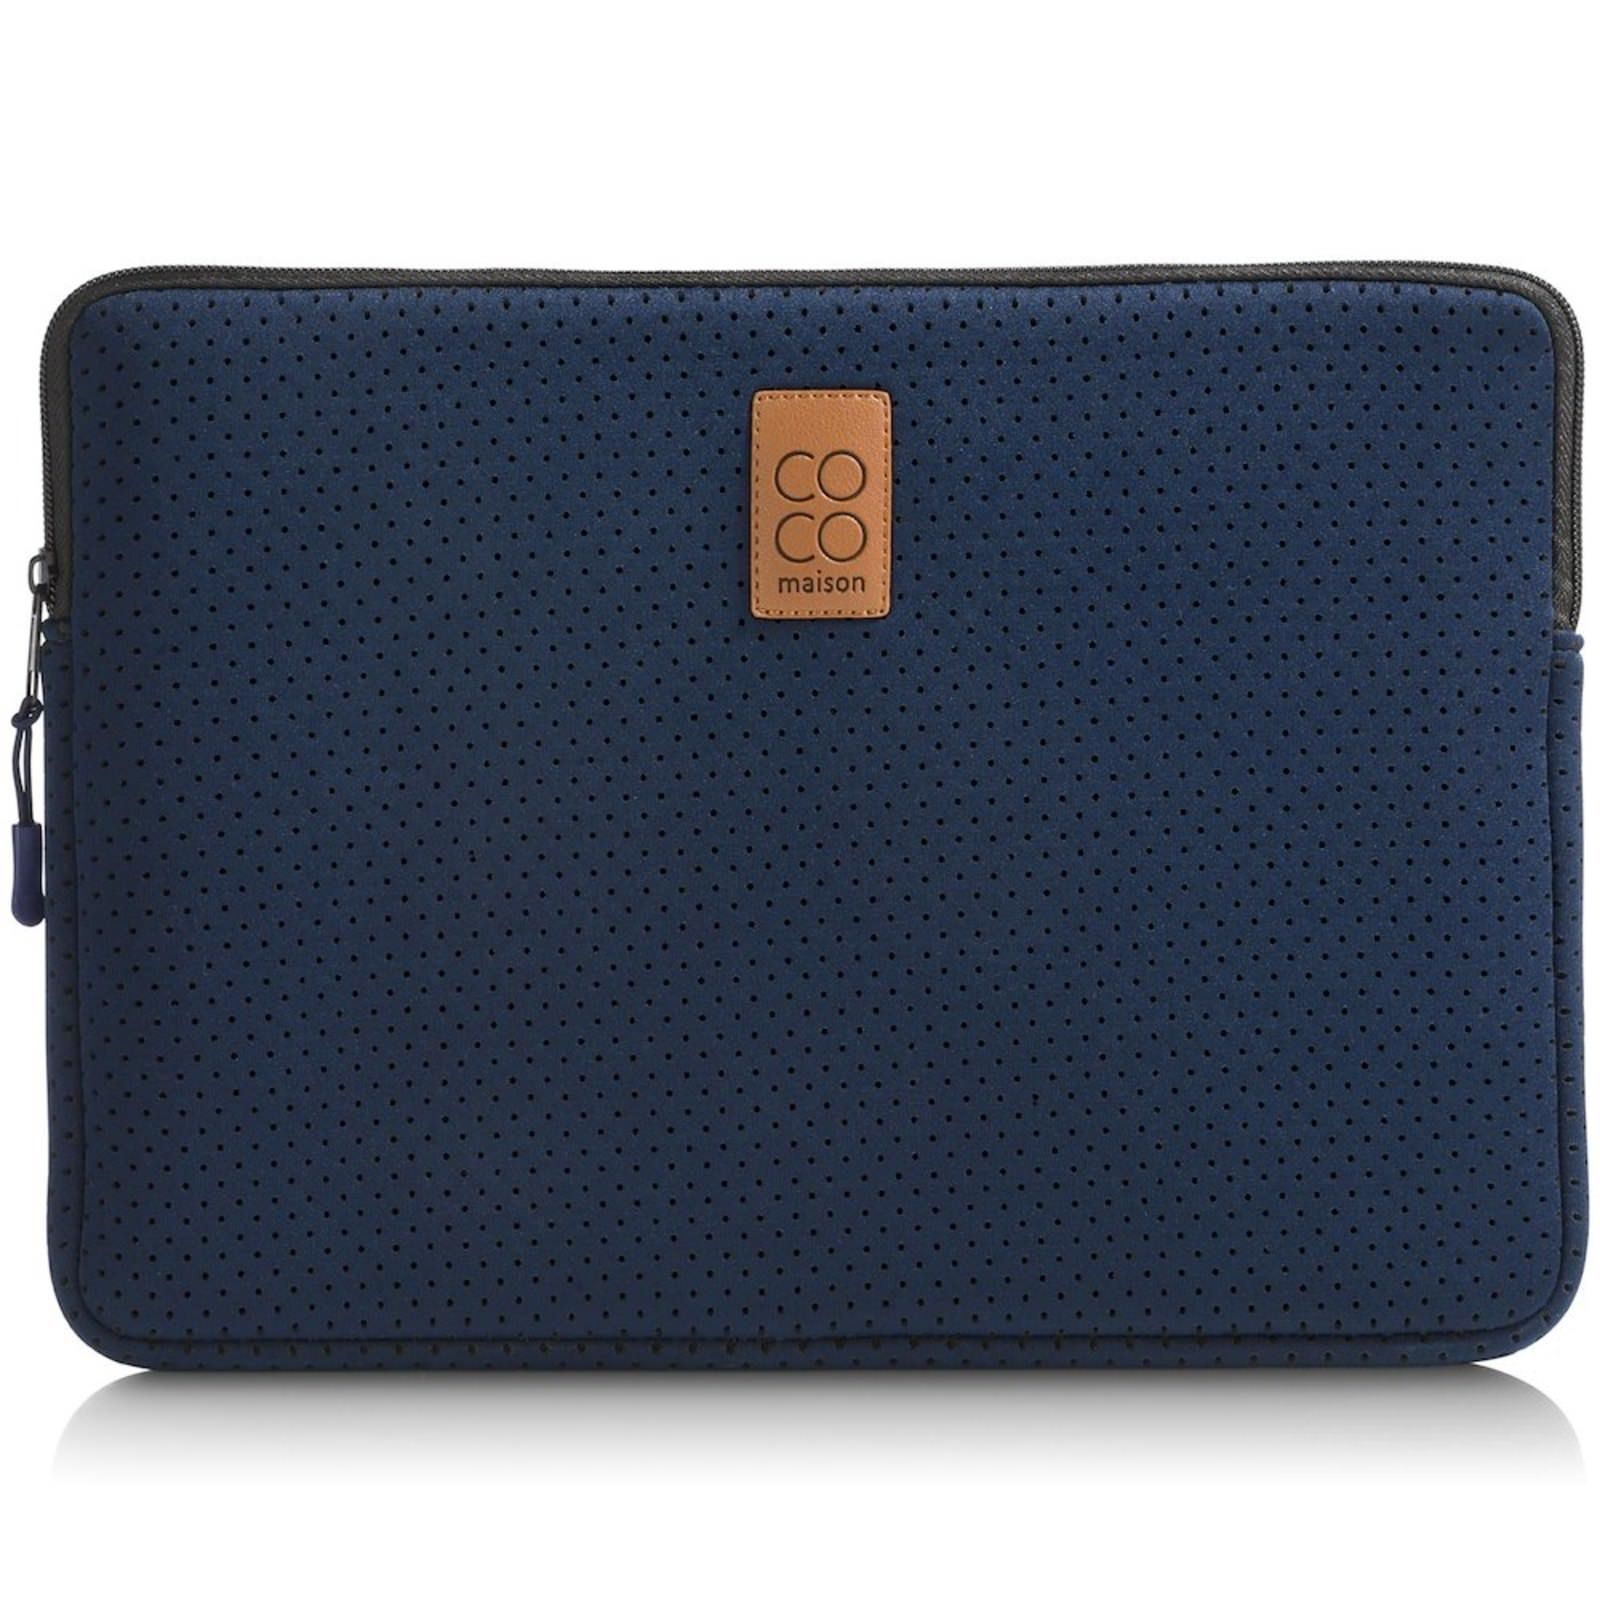 BLAUW LAPTOPHOES 13INCH